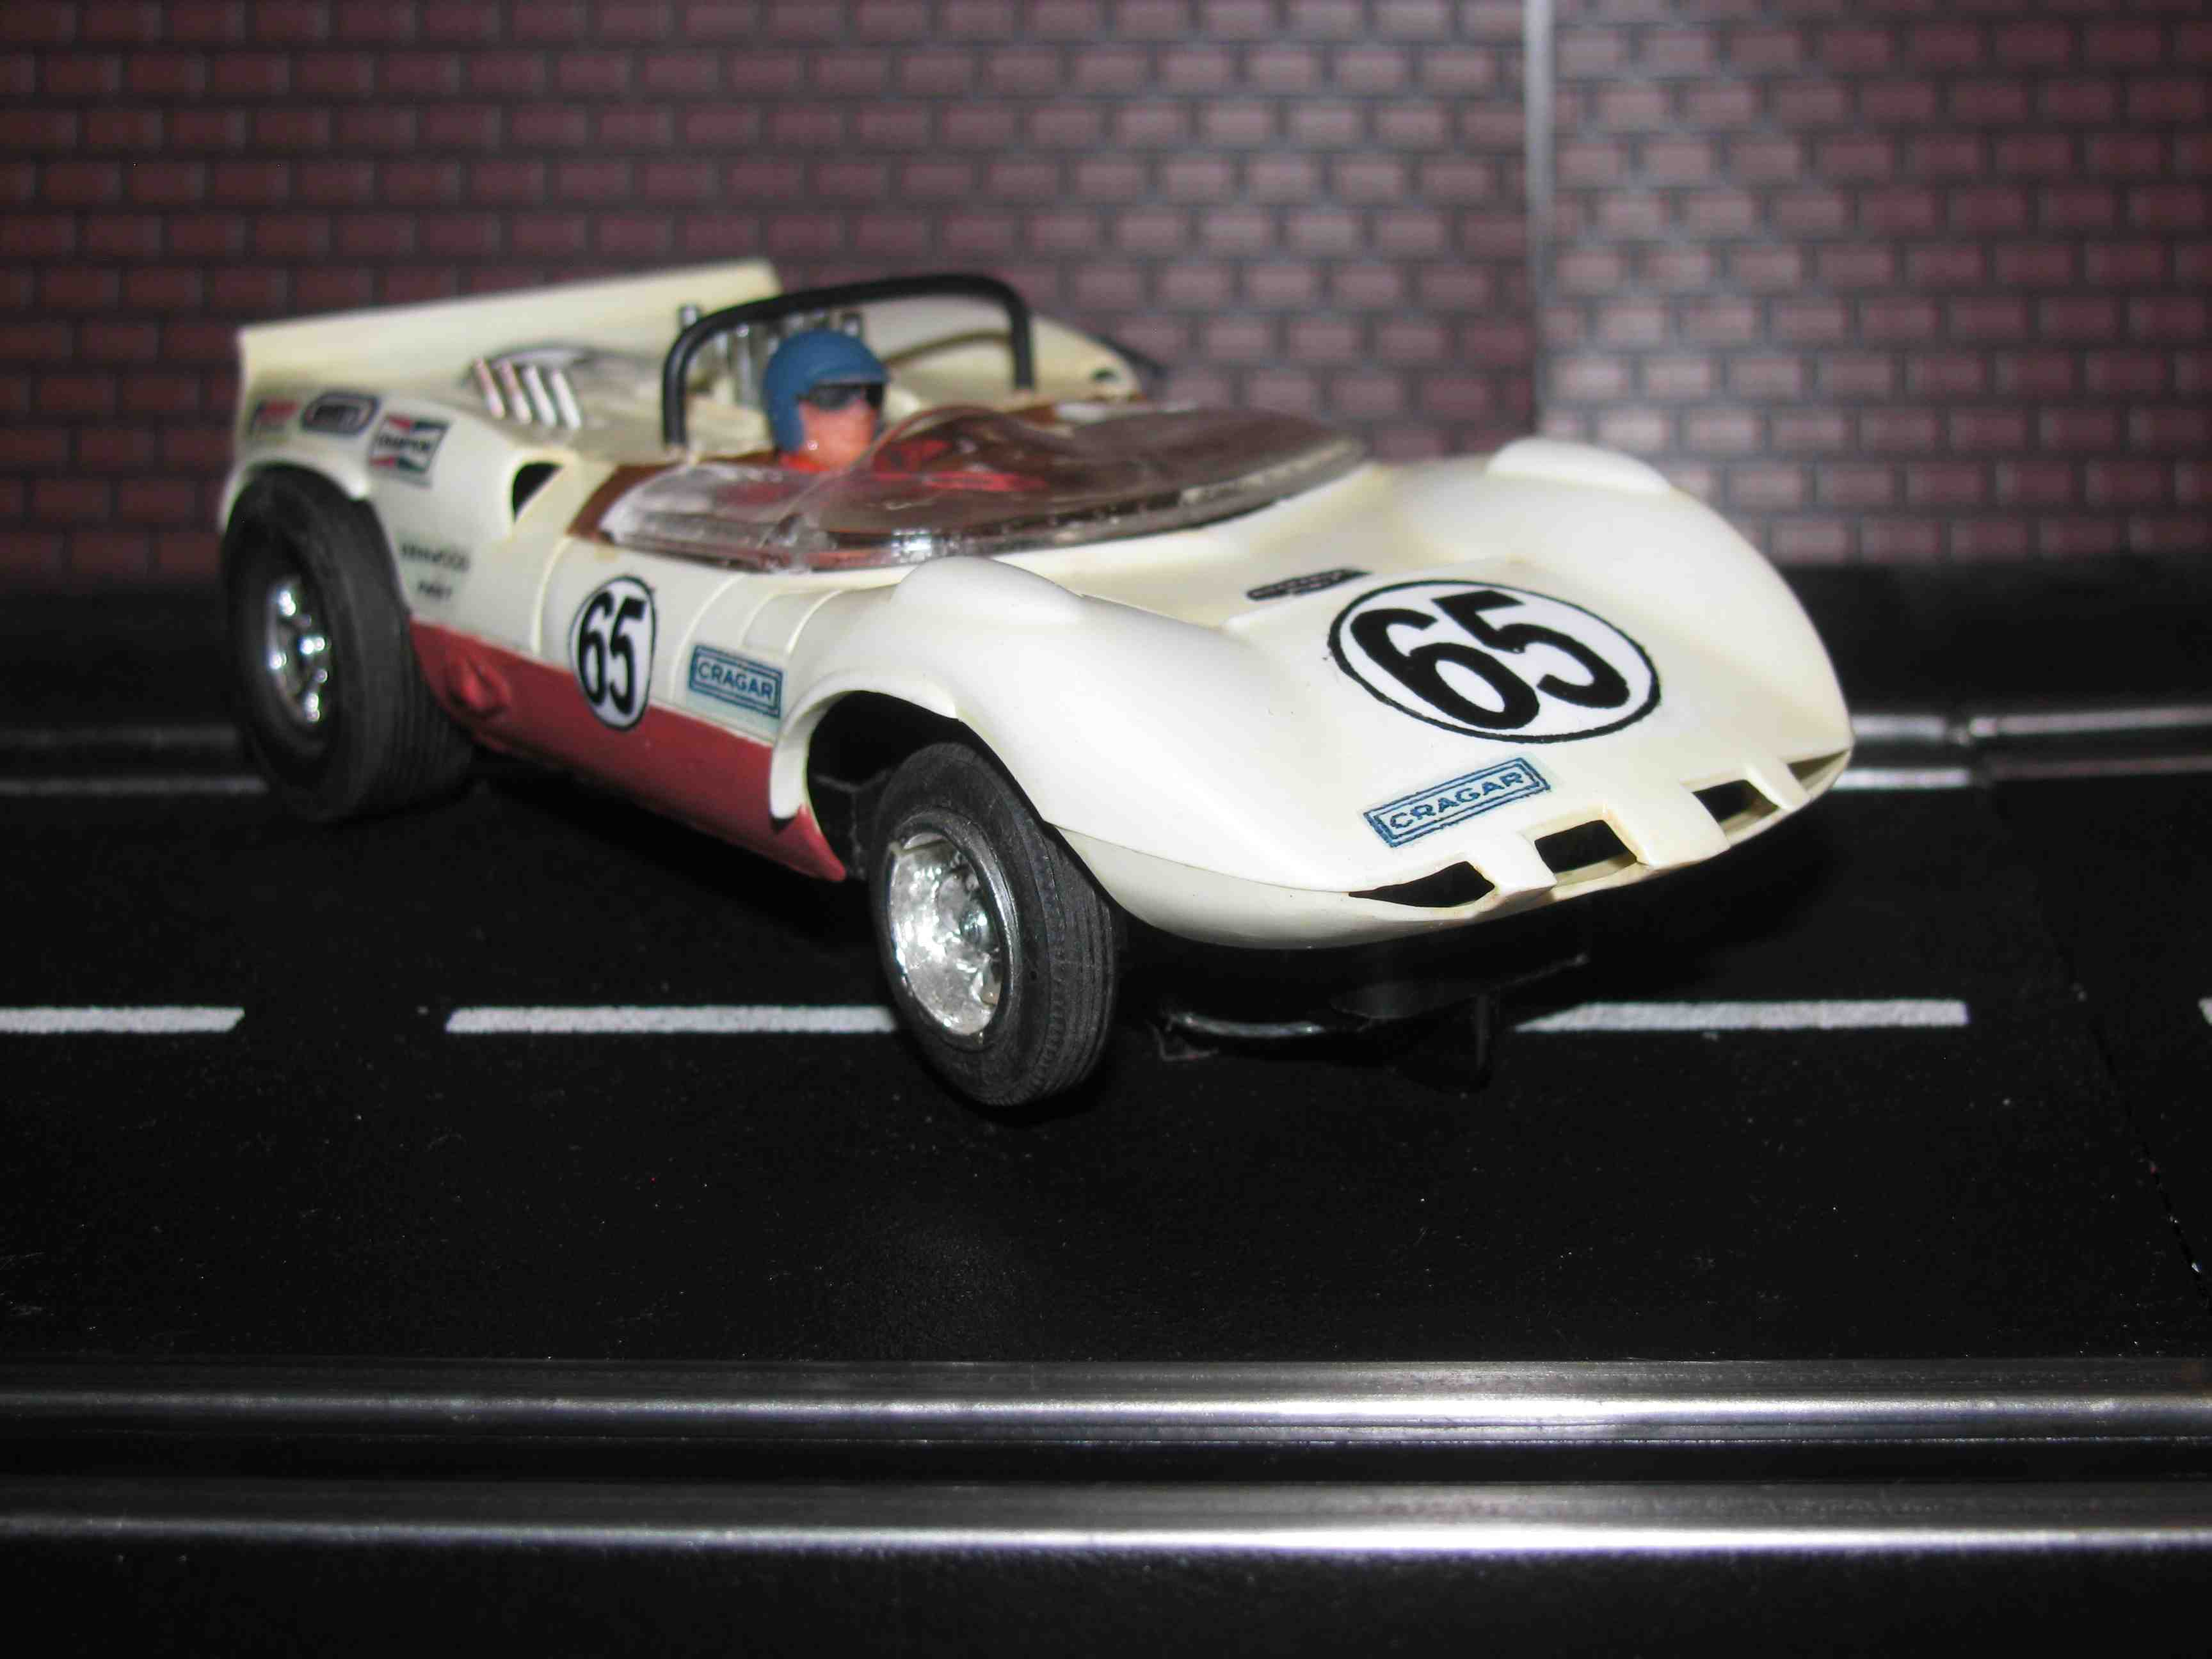 *** SOLD *** Strombecker Chaparral 2D Slot Car 1/32 Scale in Two Tone White/Burgundy – Car 65